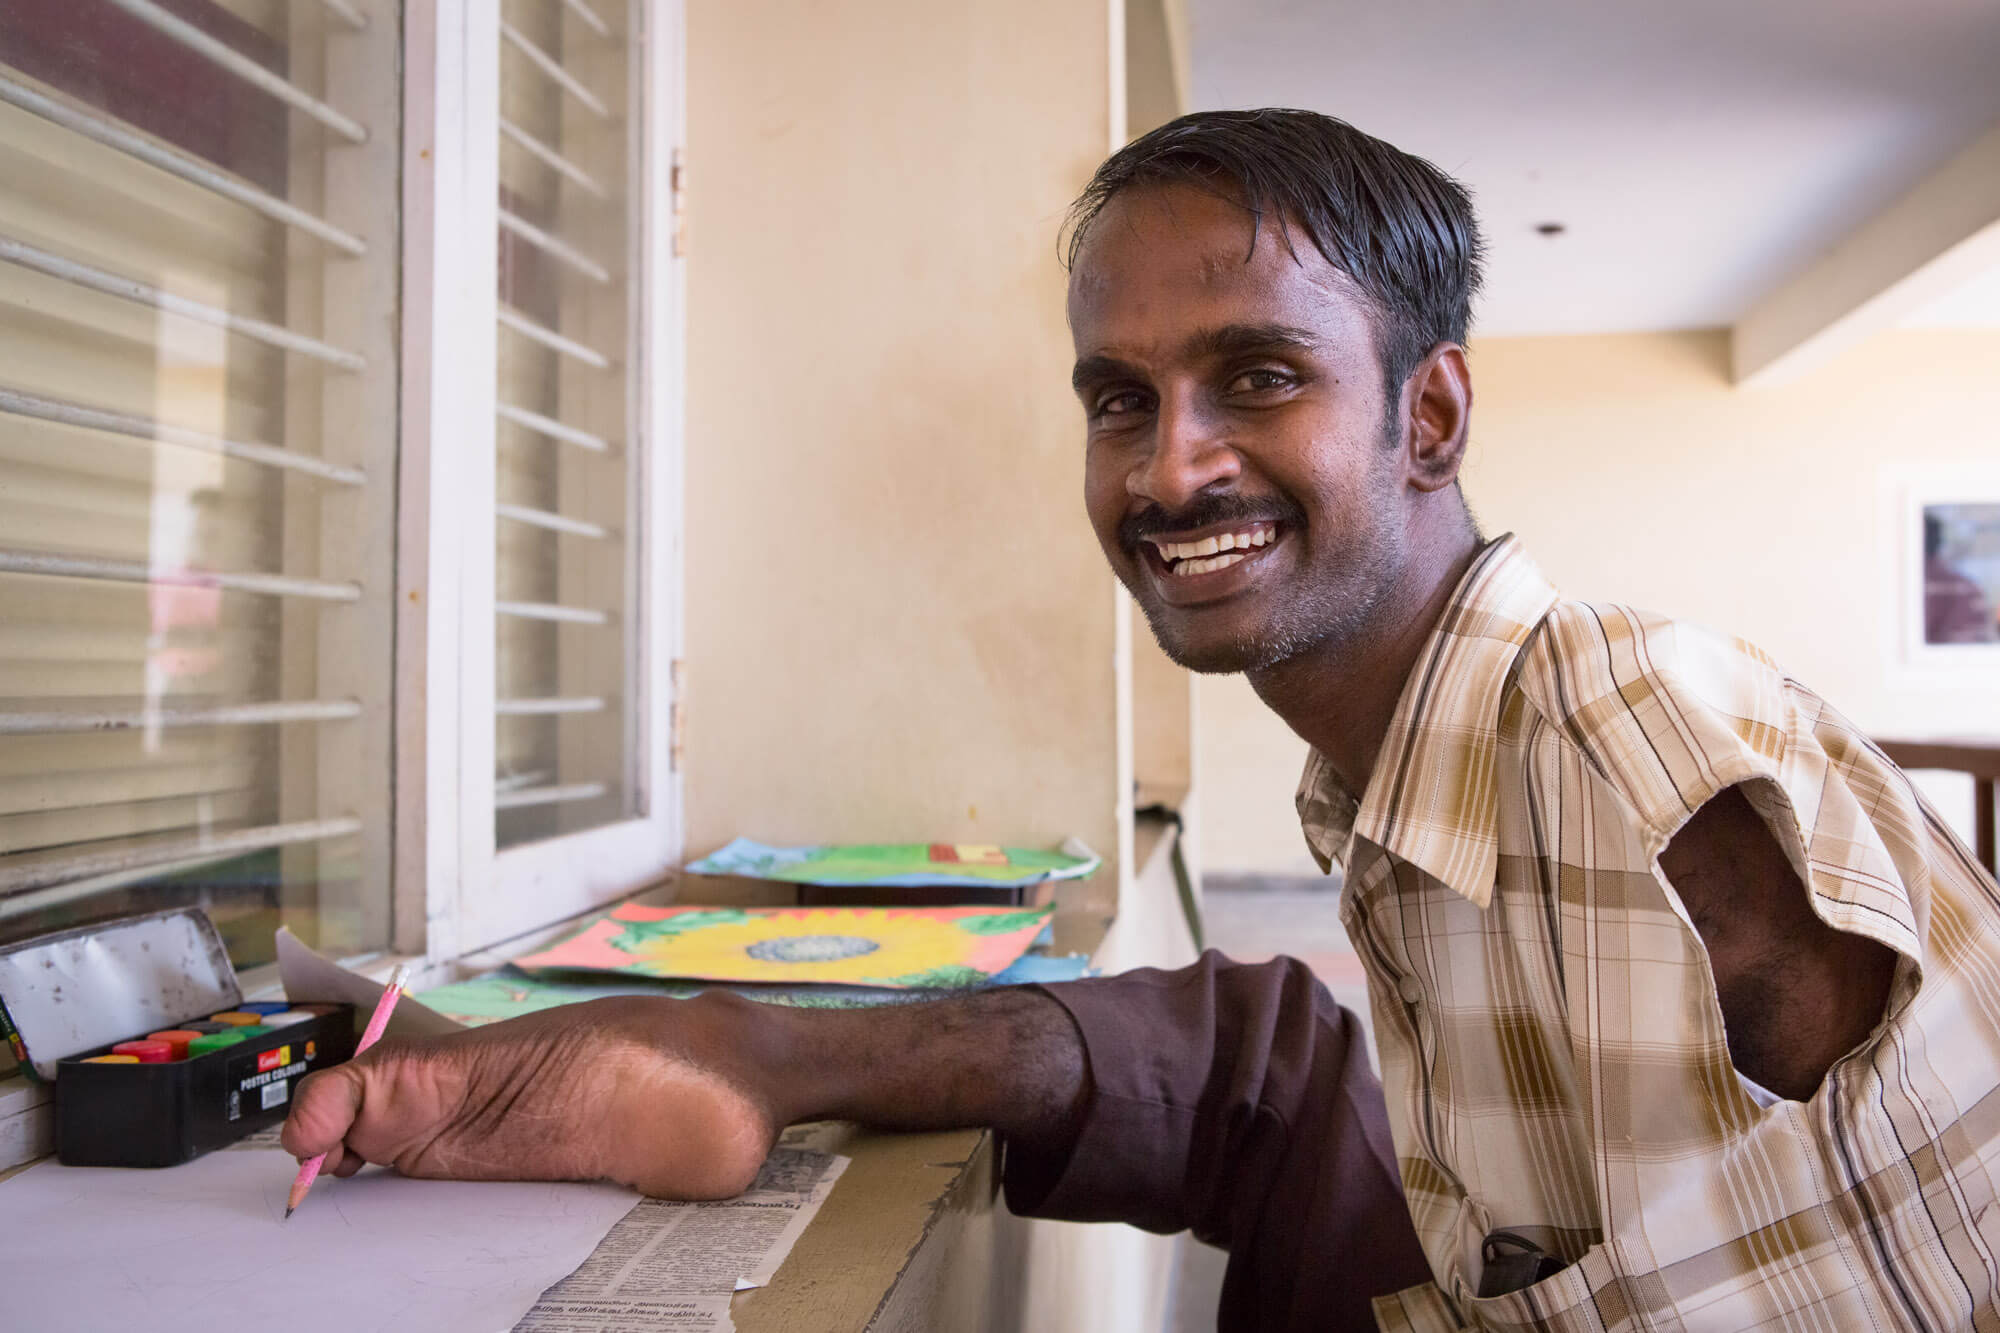 Hope foundation, Nagapattinam, Tamil Nadu, India, toe painter